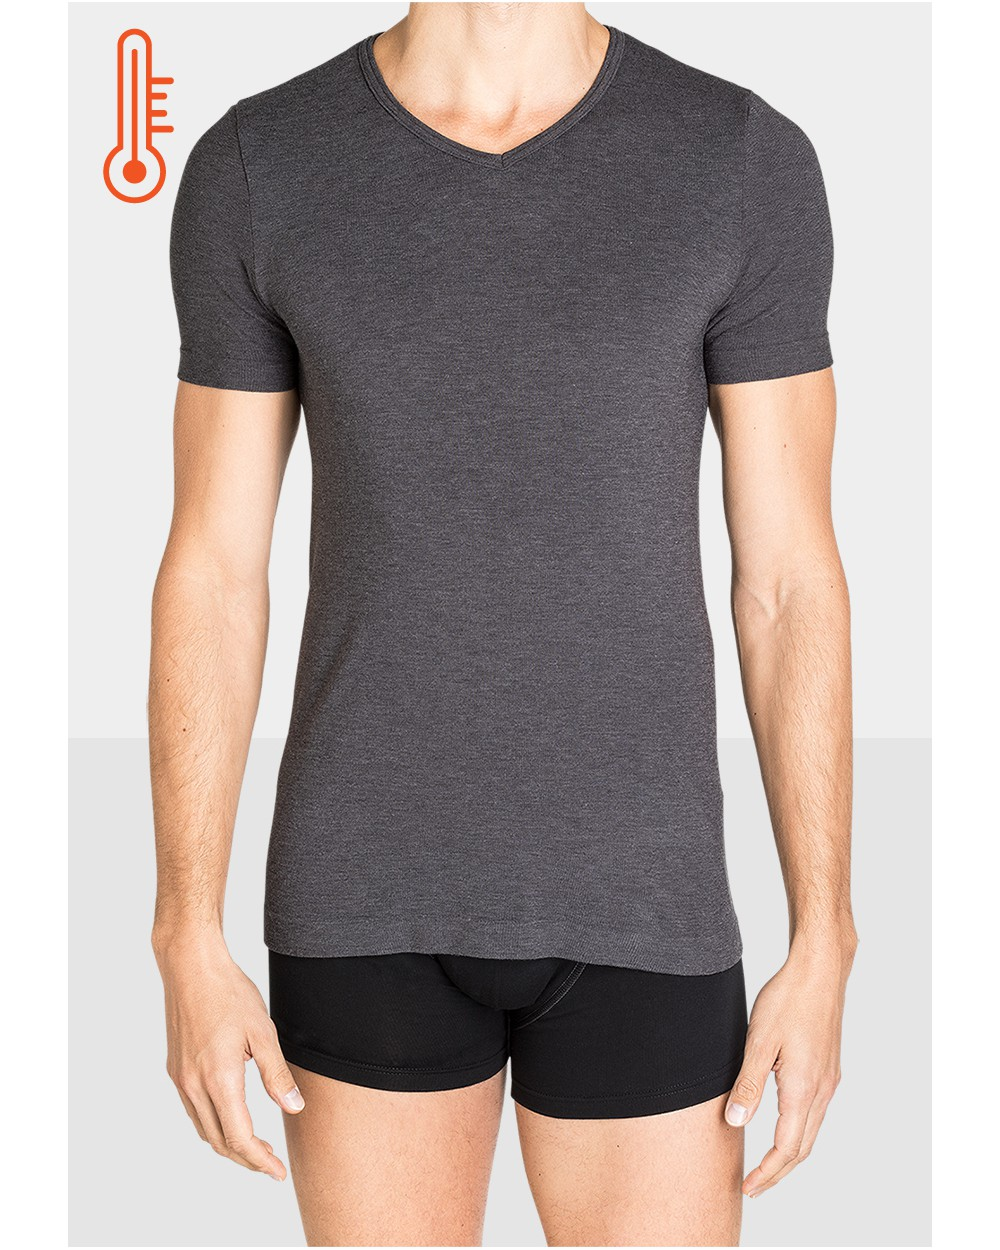 T-shirt Homme Col V Ultra Chaud Anthracite